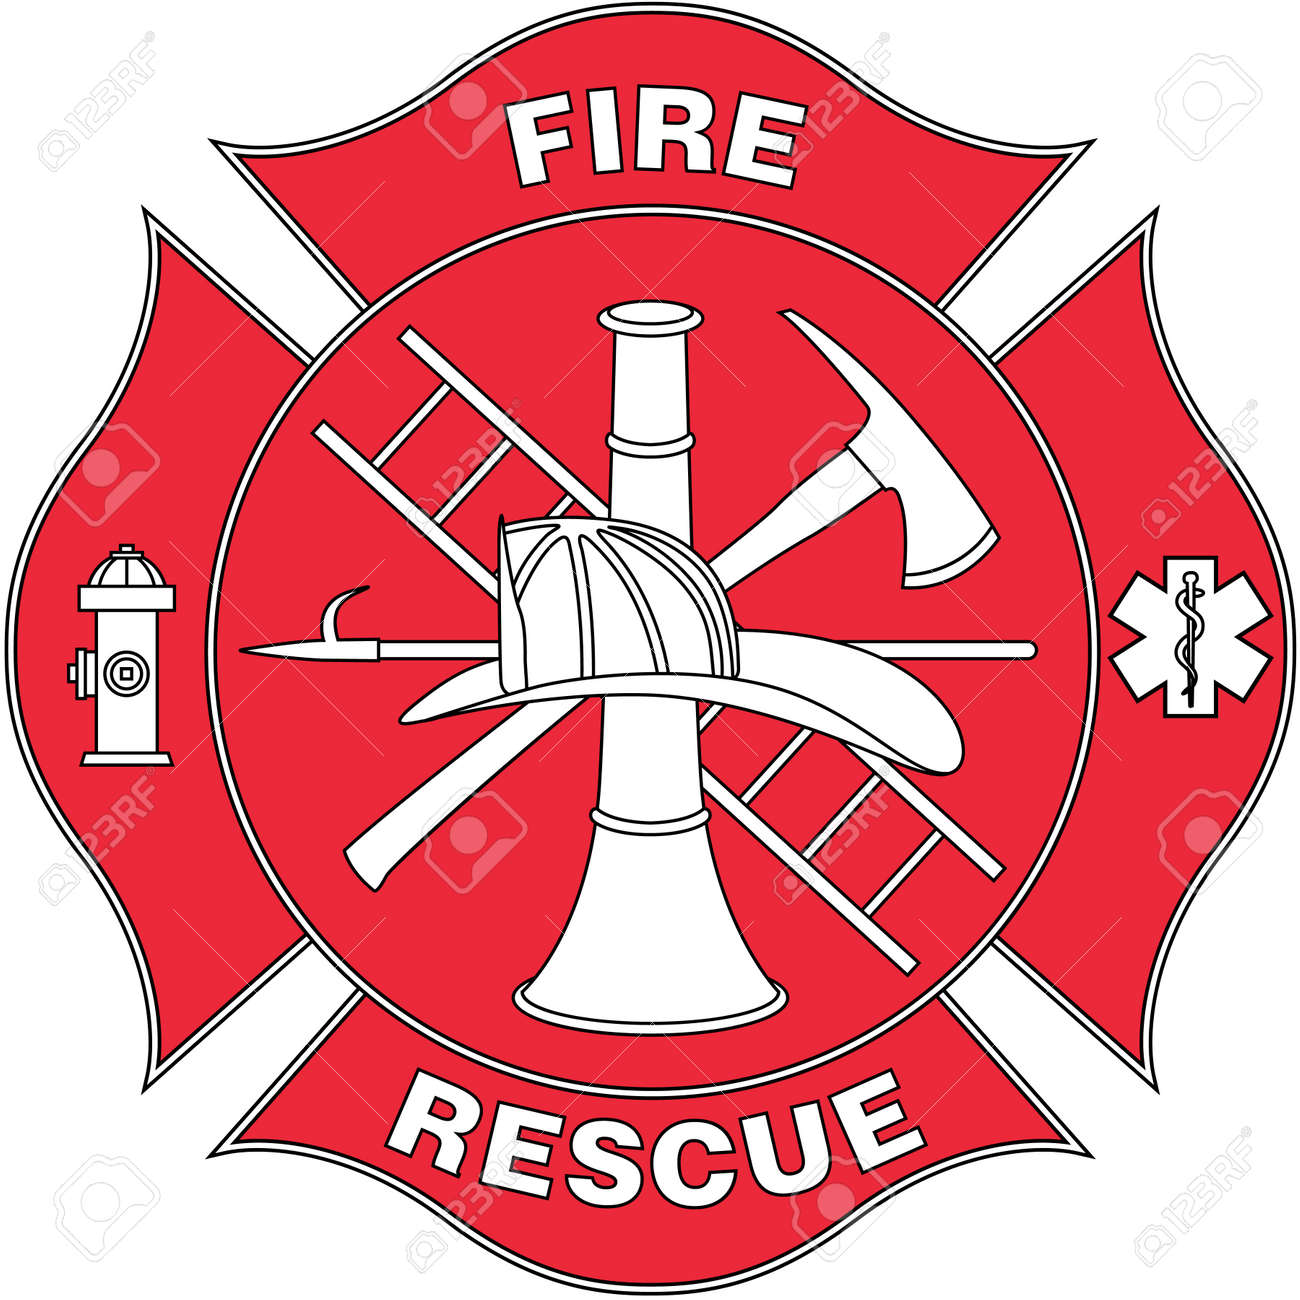 Fire and Rescue Logo Illustration - 84057869